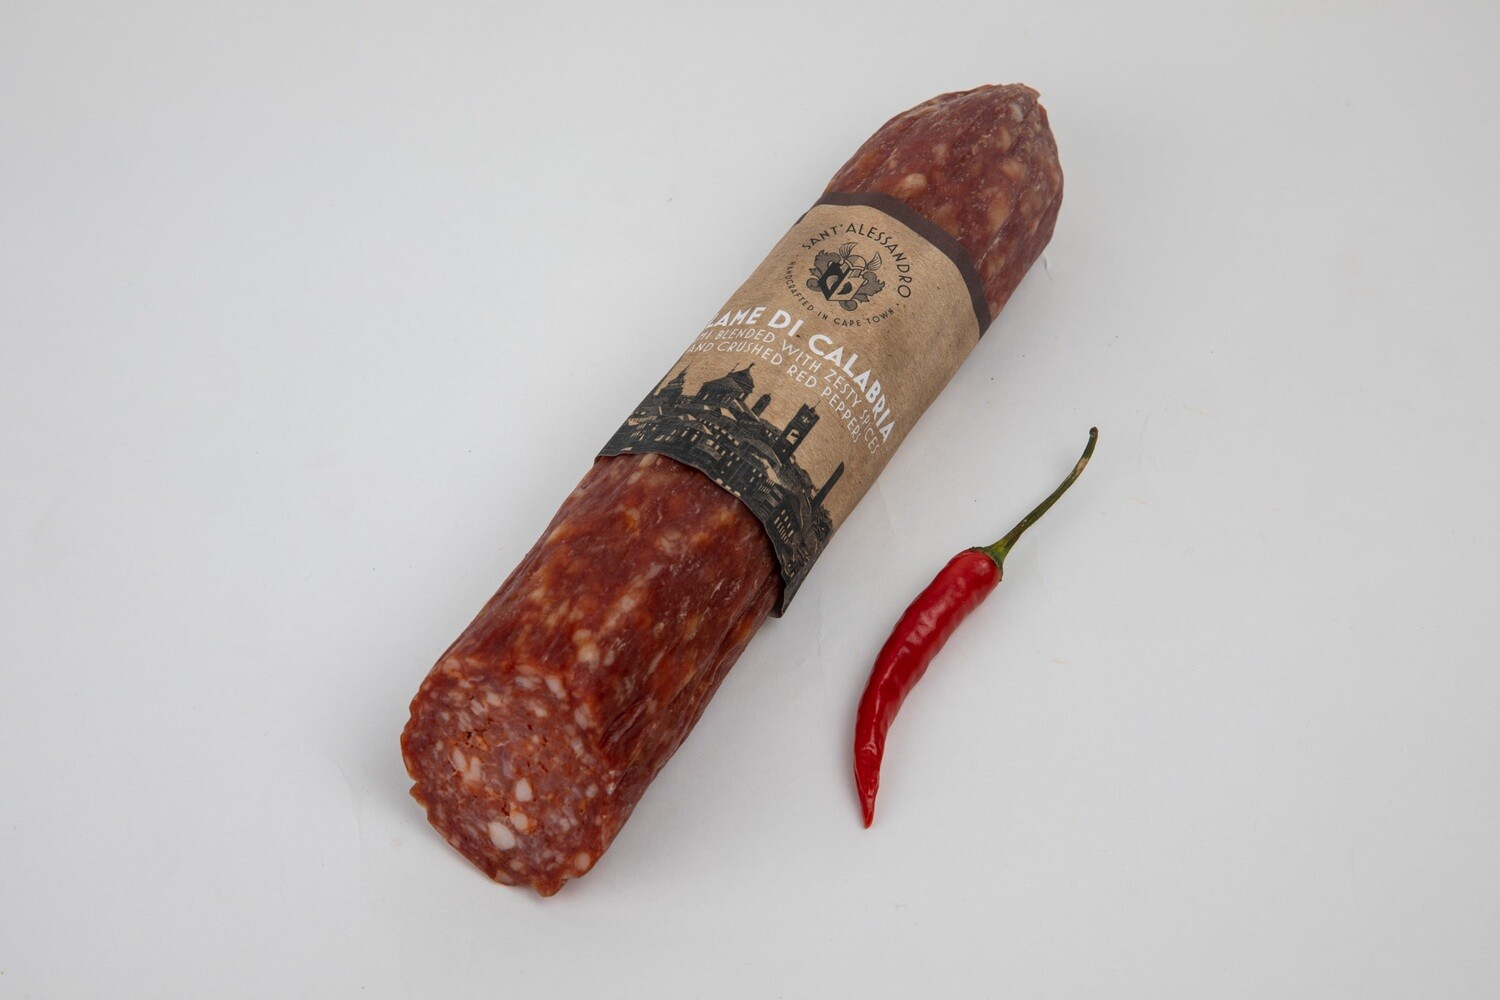 Salami di Calabria (425g on average)